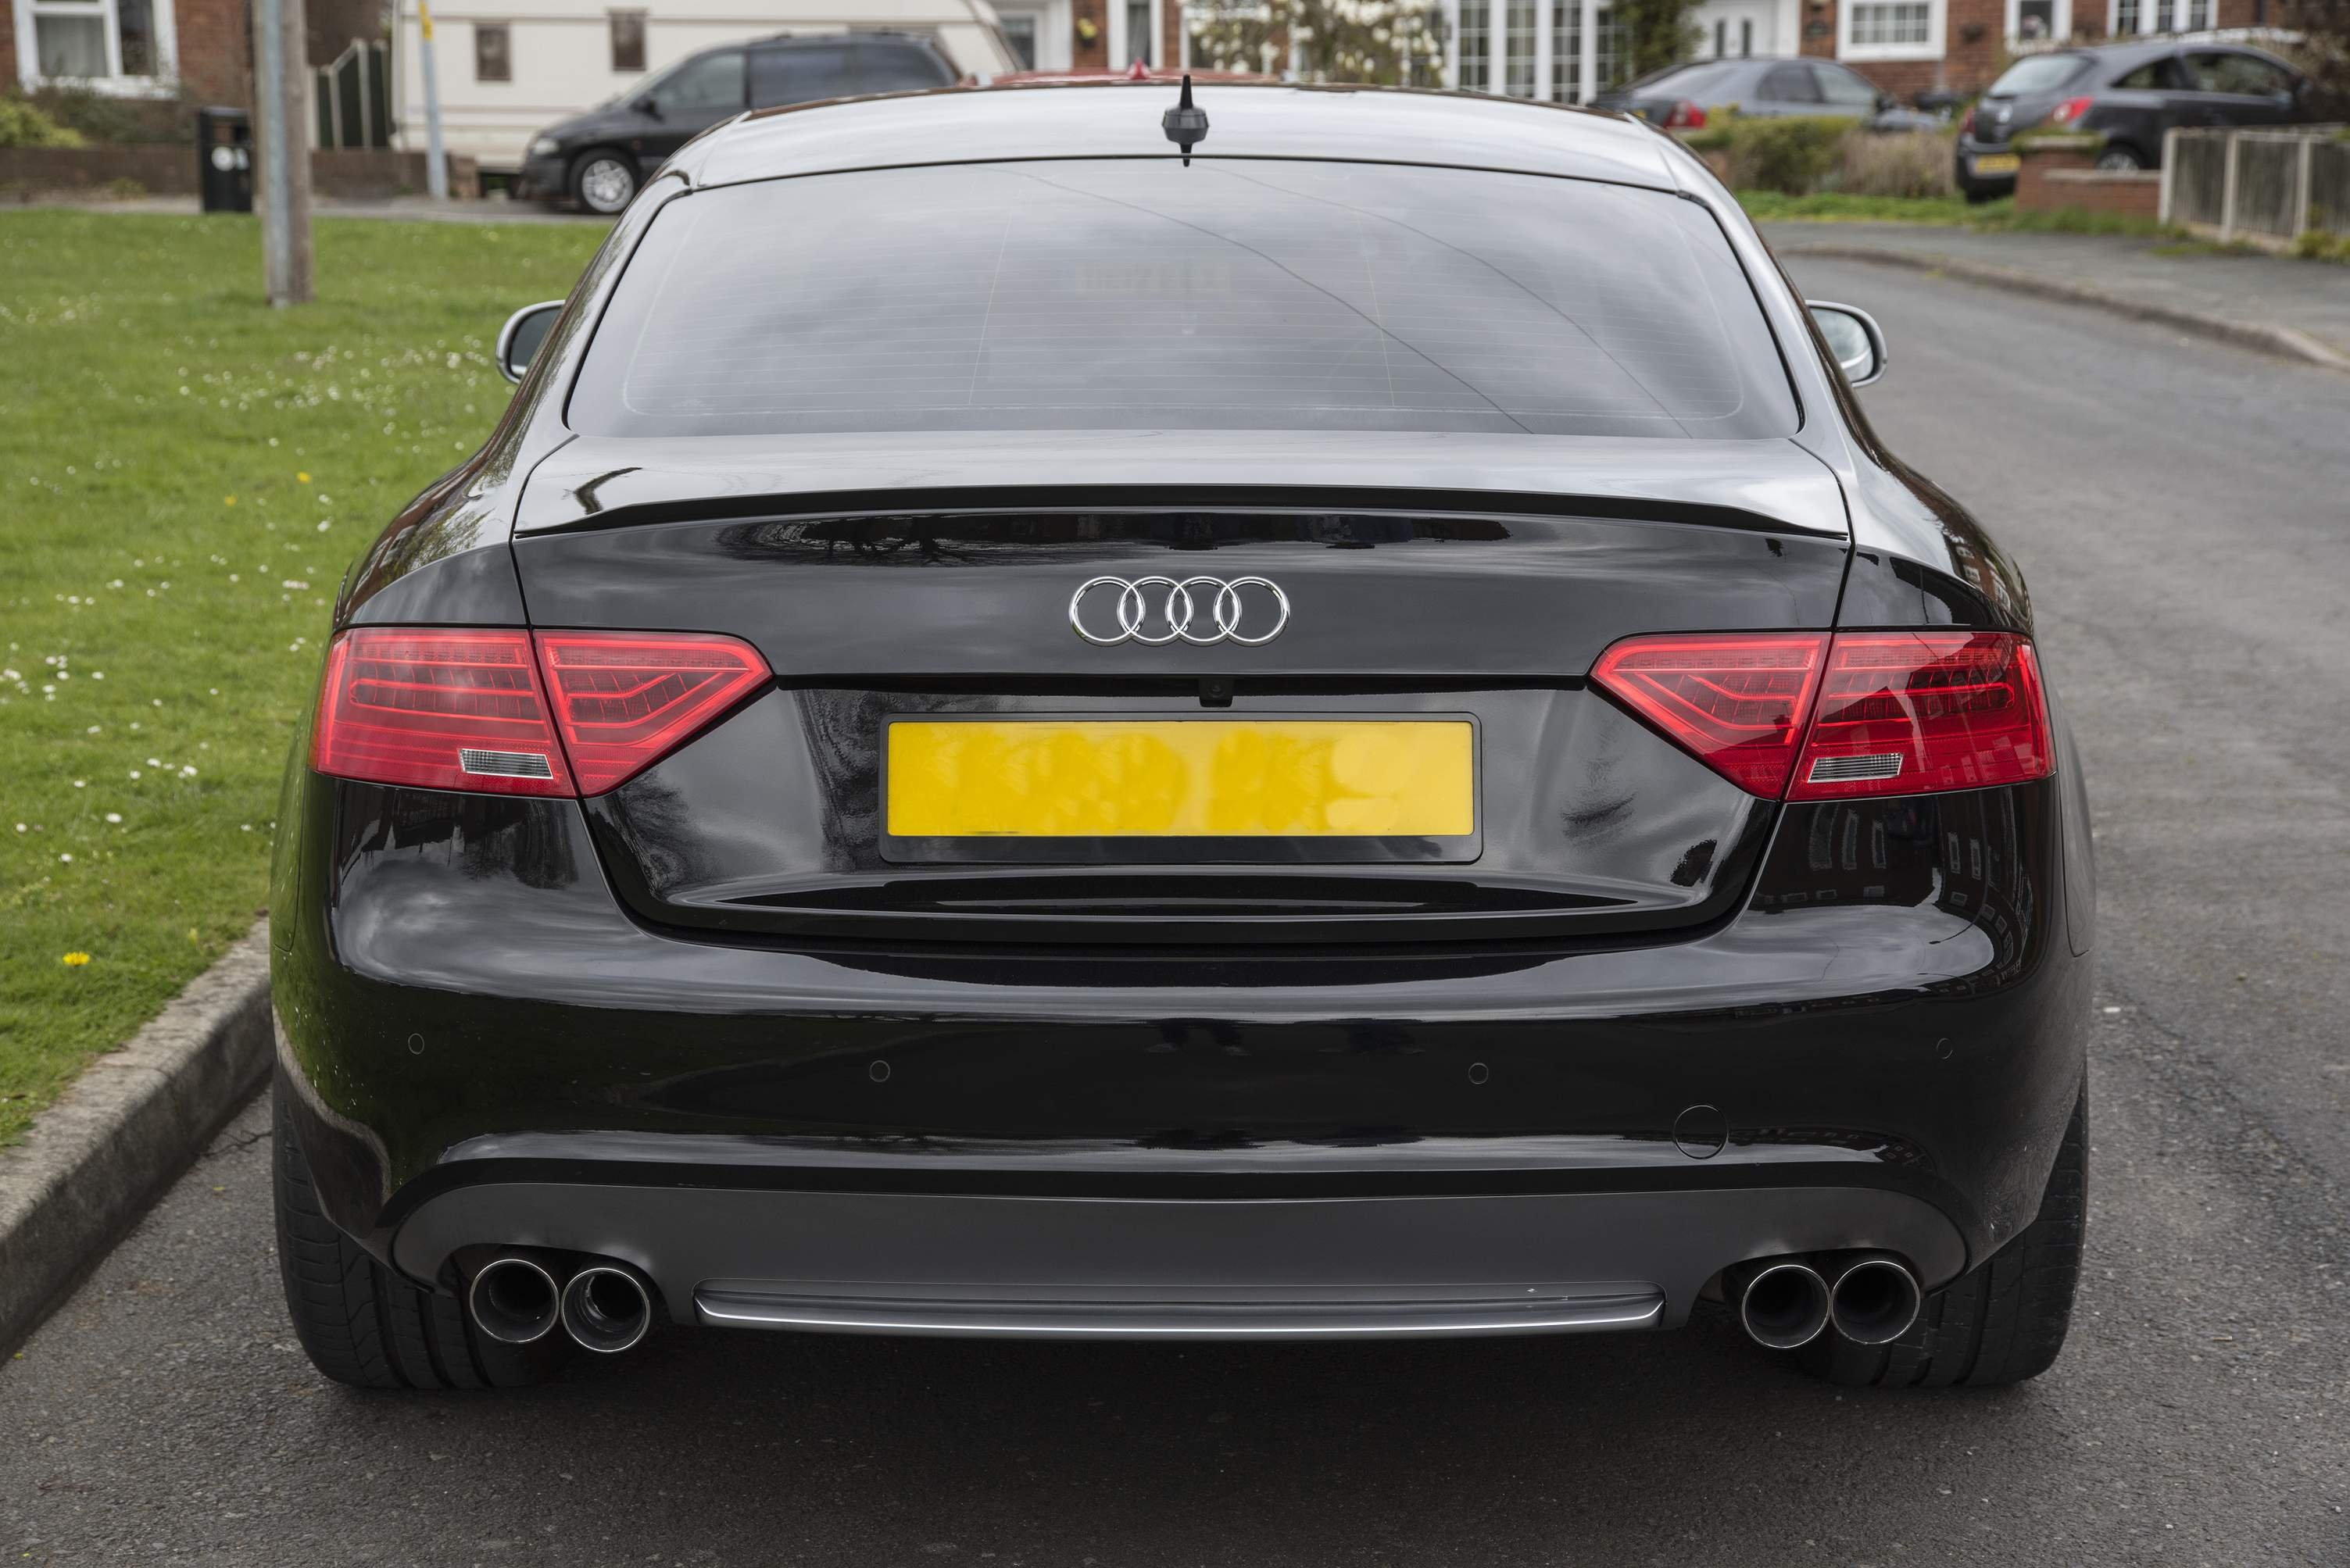 Read this if you are installing Rear Reversing Camera | Audi